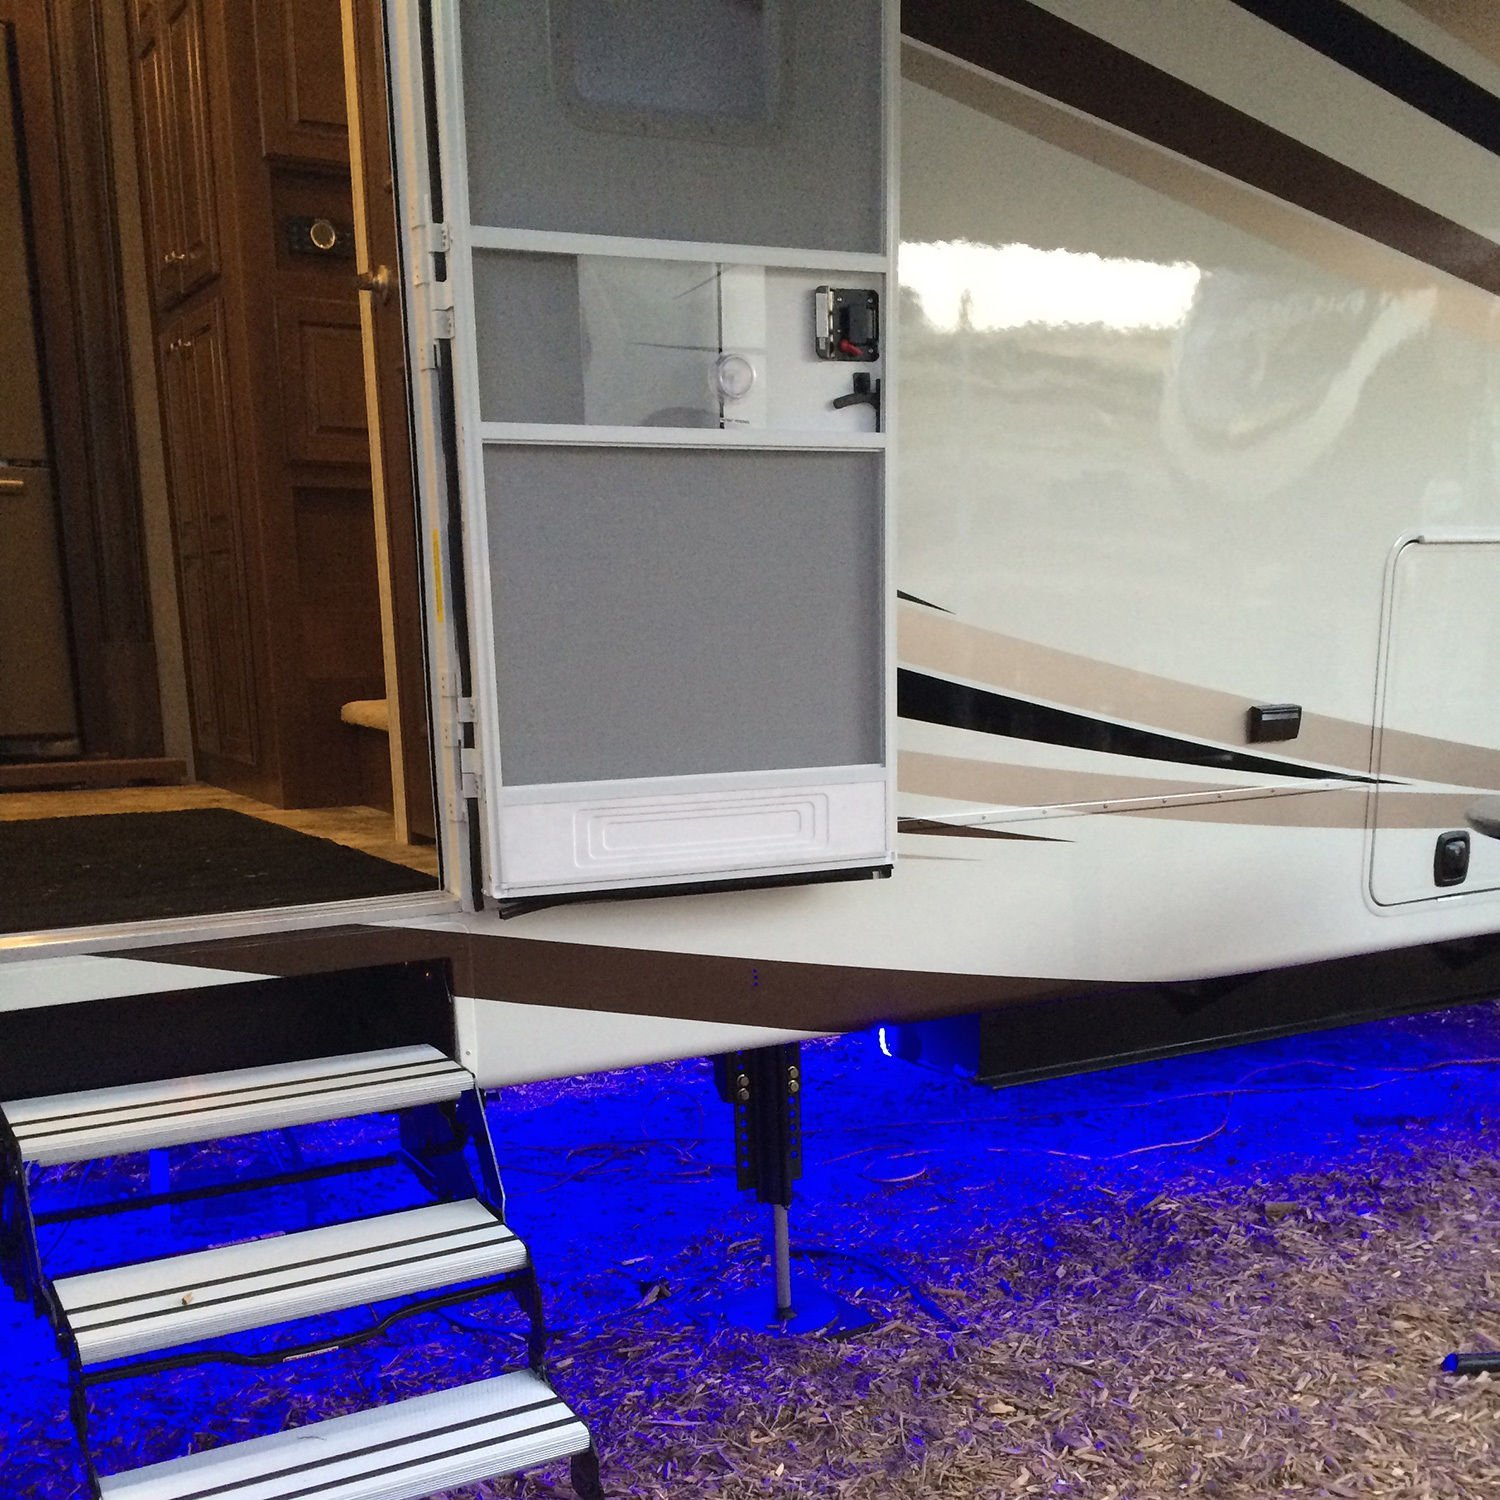 RV Recreational Vehicle Awning LED Light Strip RGB Multi Colored with 44 Key IR Remote and Power Source (4 Foot Length)